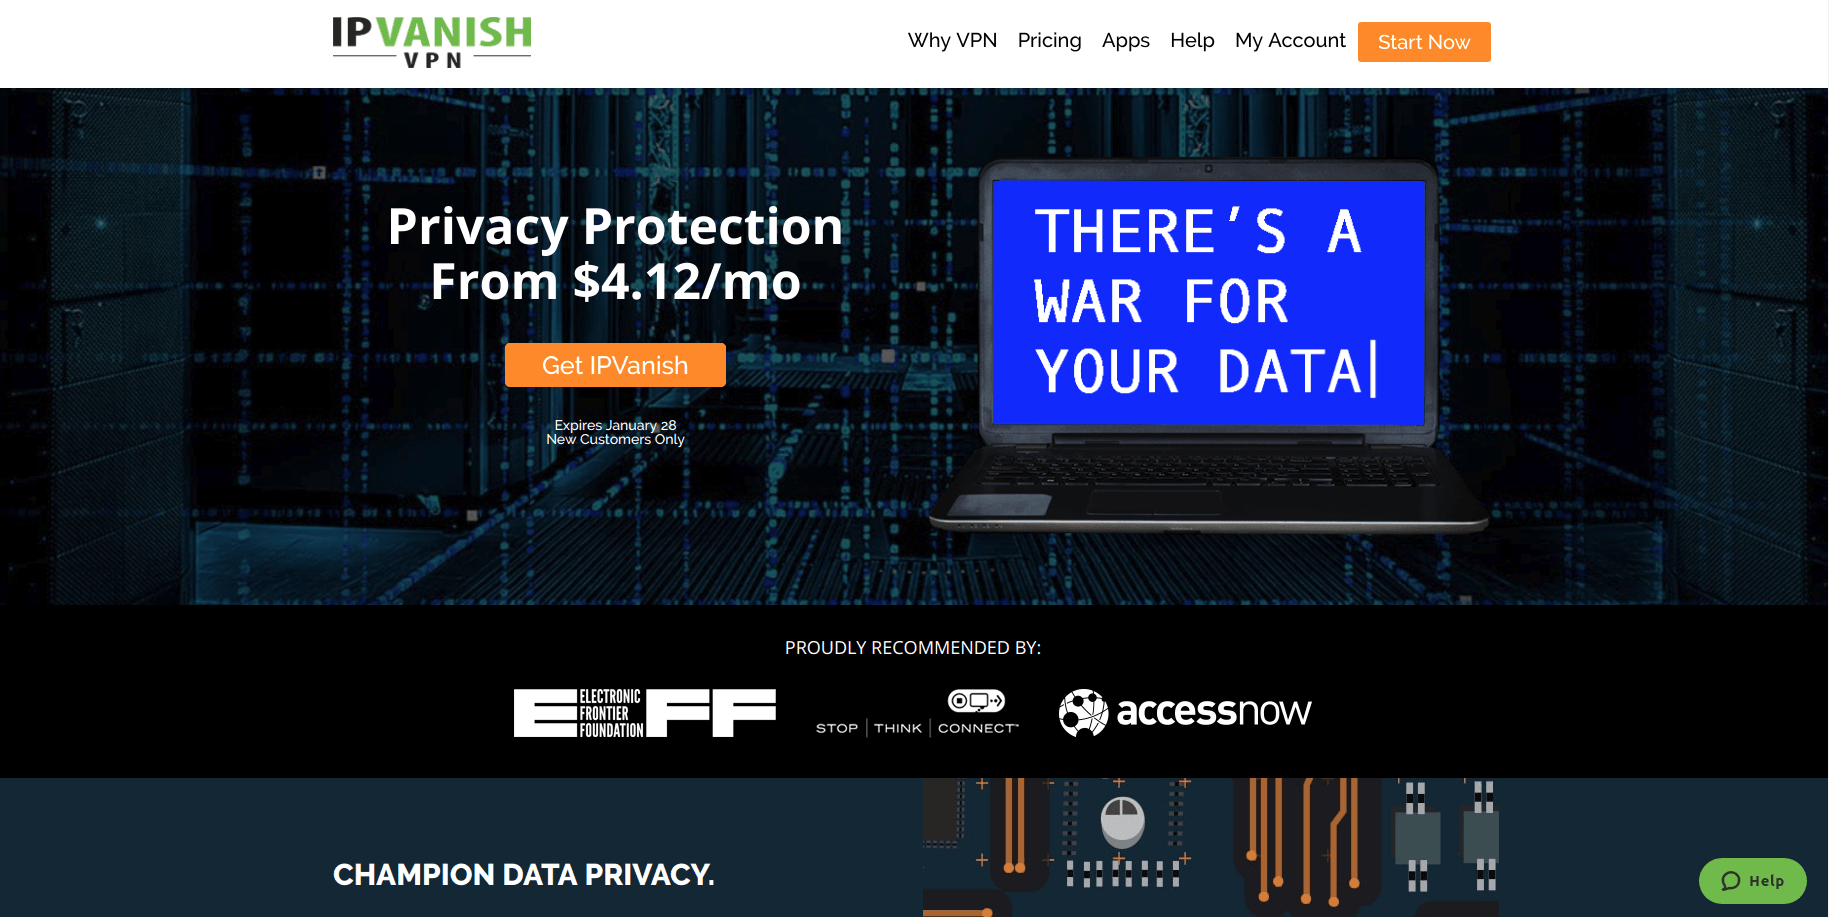 You'd be surprised how many VPNs are owned by the same company